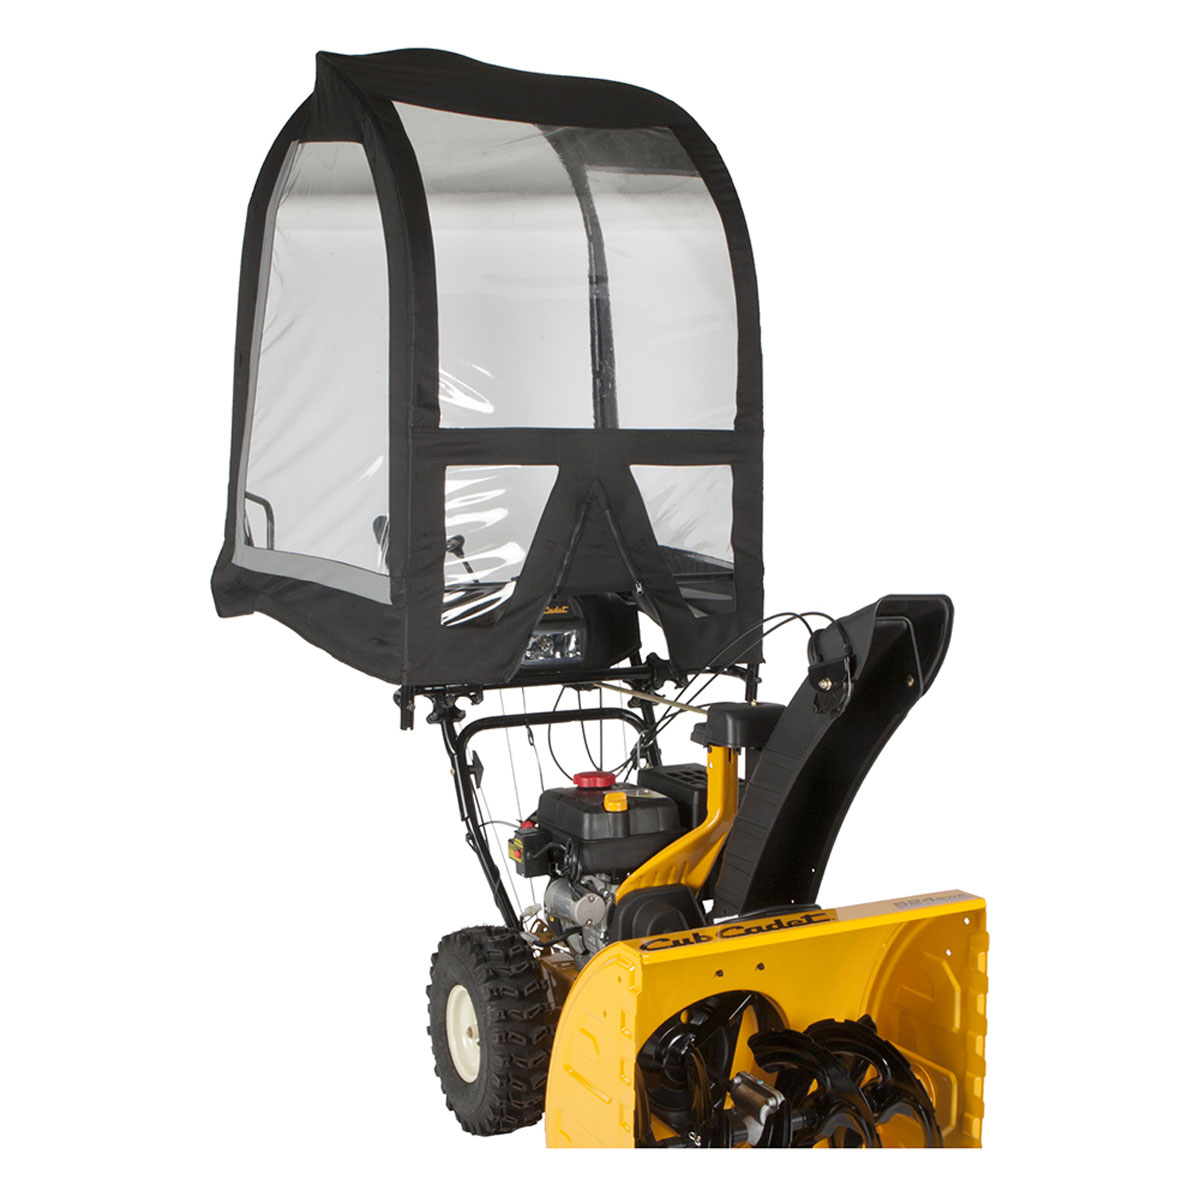 Yellow Snow Blower >> Cub Cadet Deluxe Snow Thrower Cab 490-241-0032 | Power Mower Sales